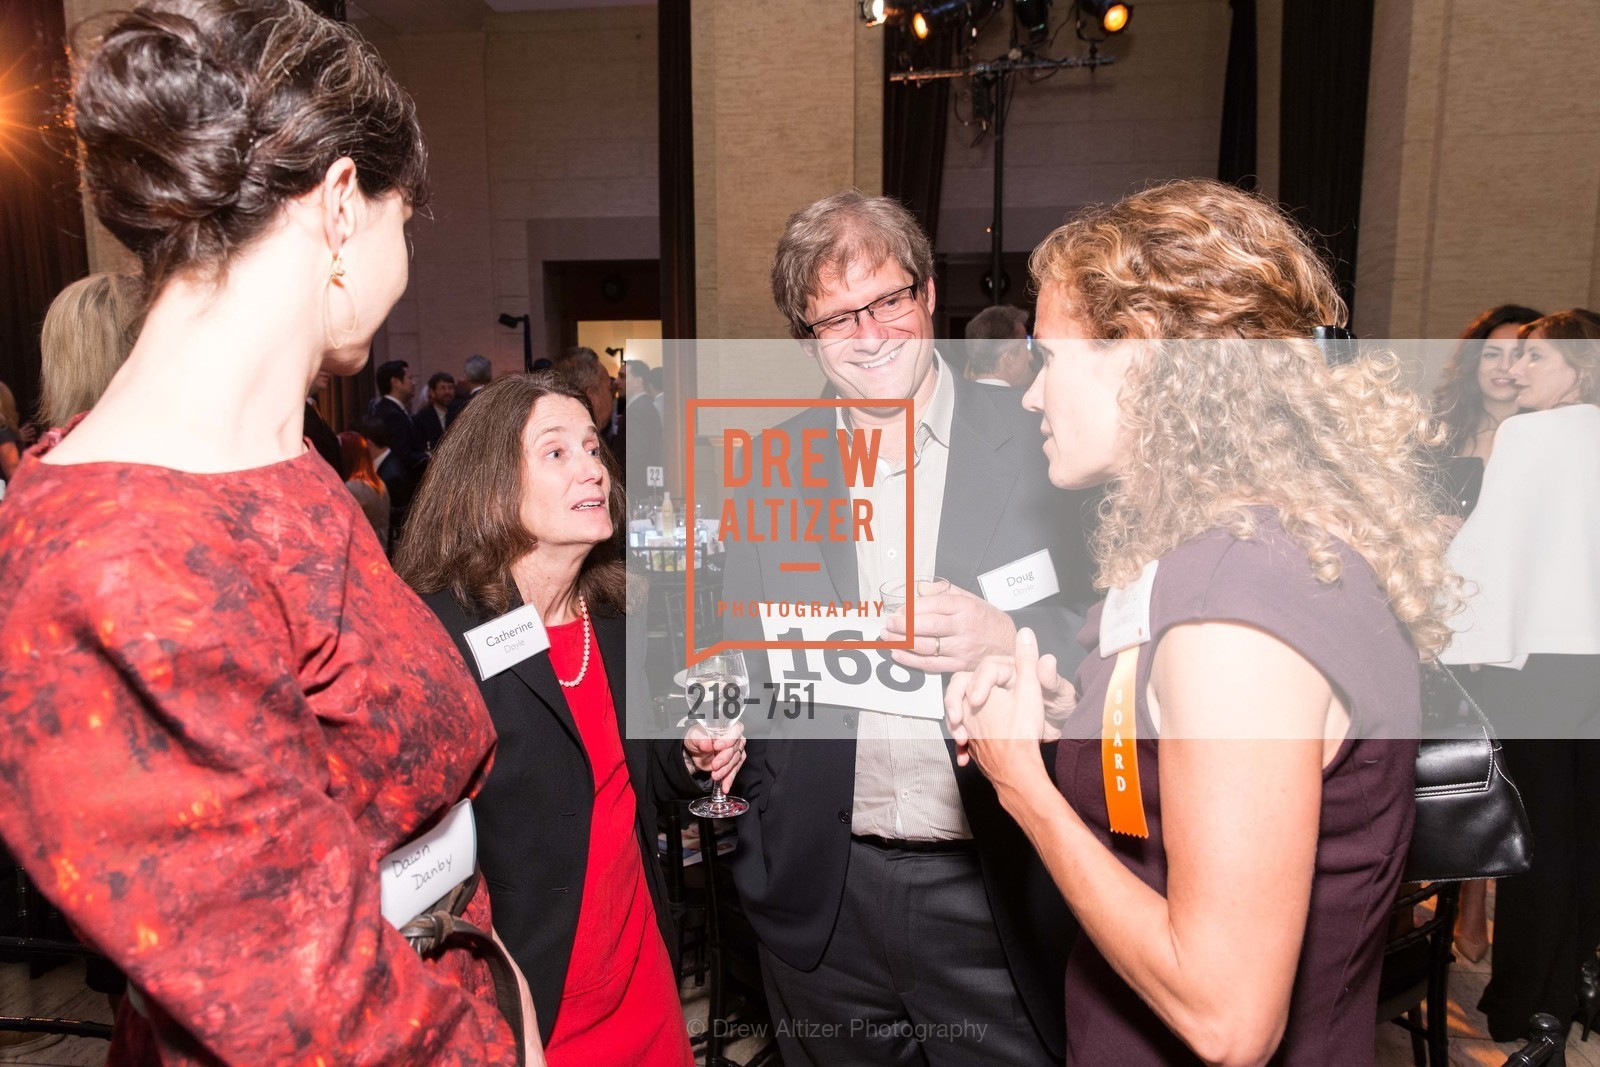 Dawn Danby, Catherine Doyle, Doug Doyle, Lynele Cameron, CENTER FOR ENVIRONMENTAL HEALTH (CEH) 2015 Gala, US, May 28th, 2015,Drew Altizer, Drew Altizer Photography, full-service agency, private events, San Francisco photographer, photographer california